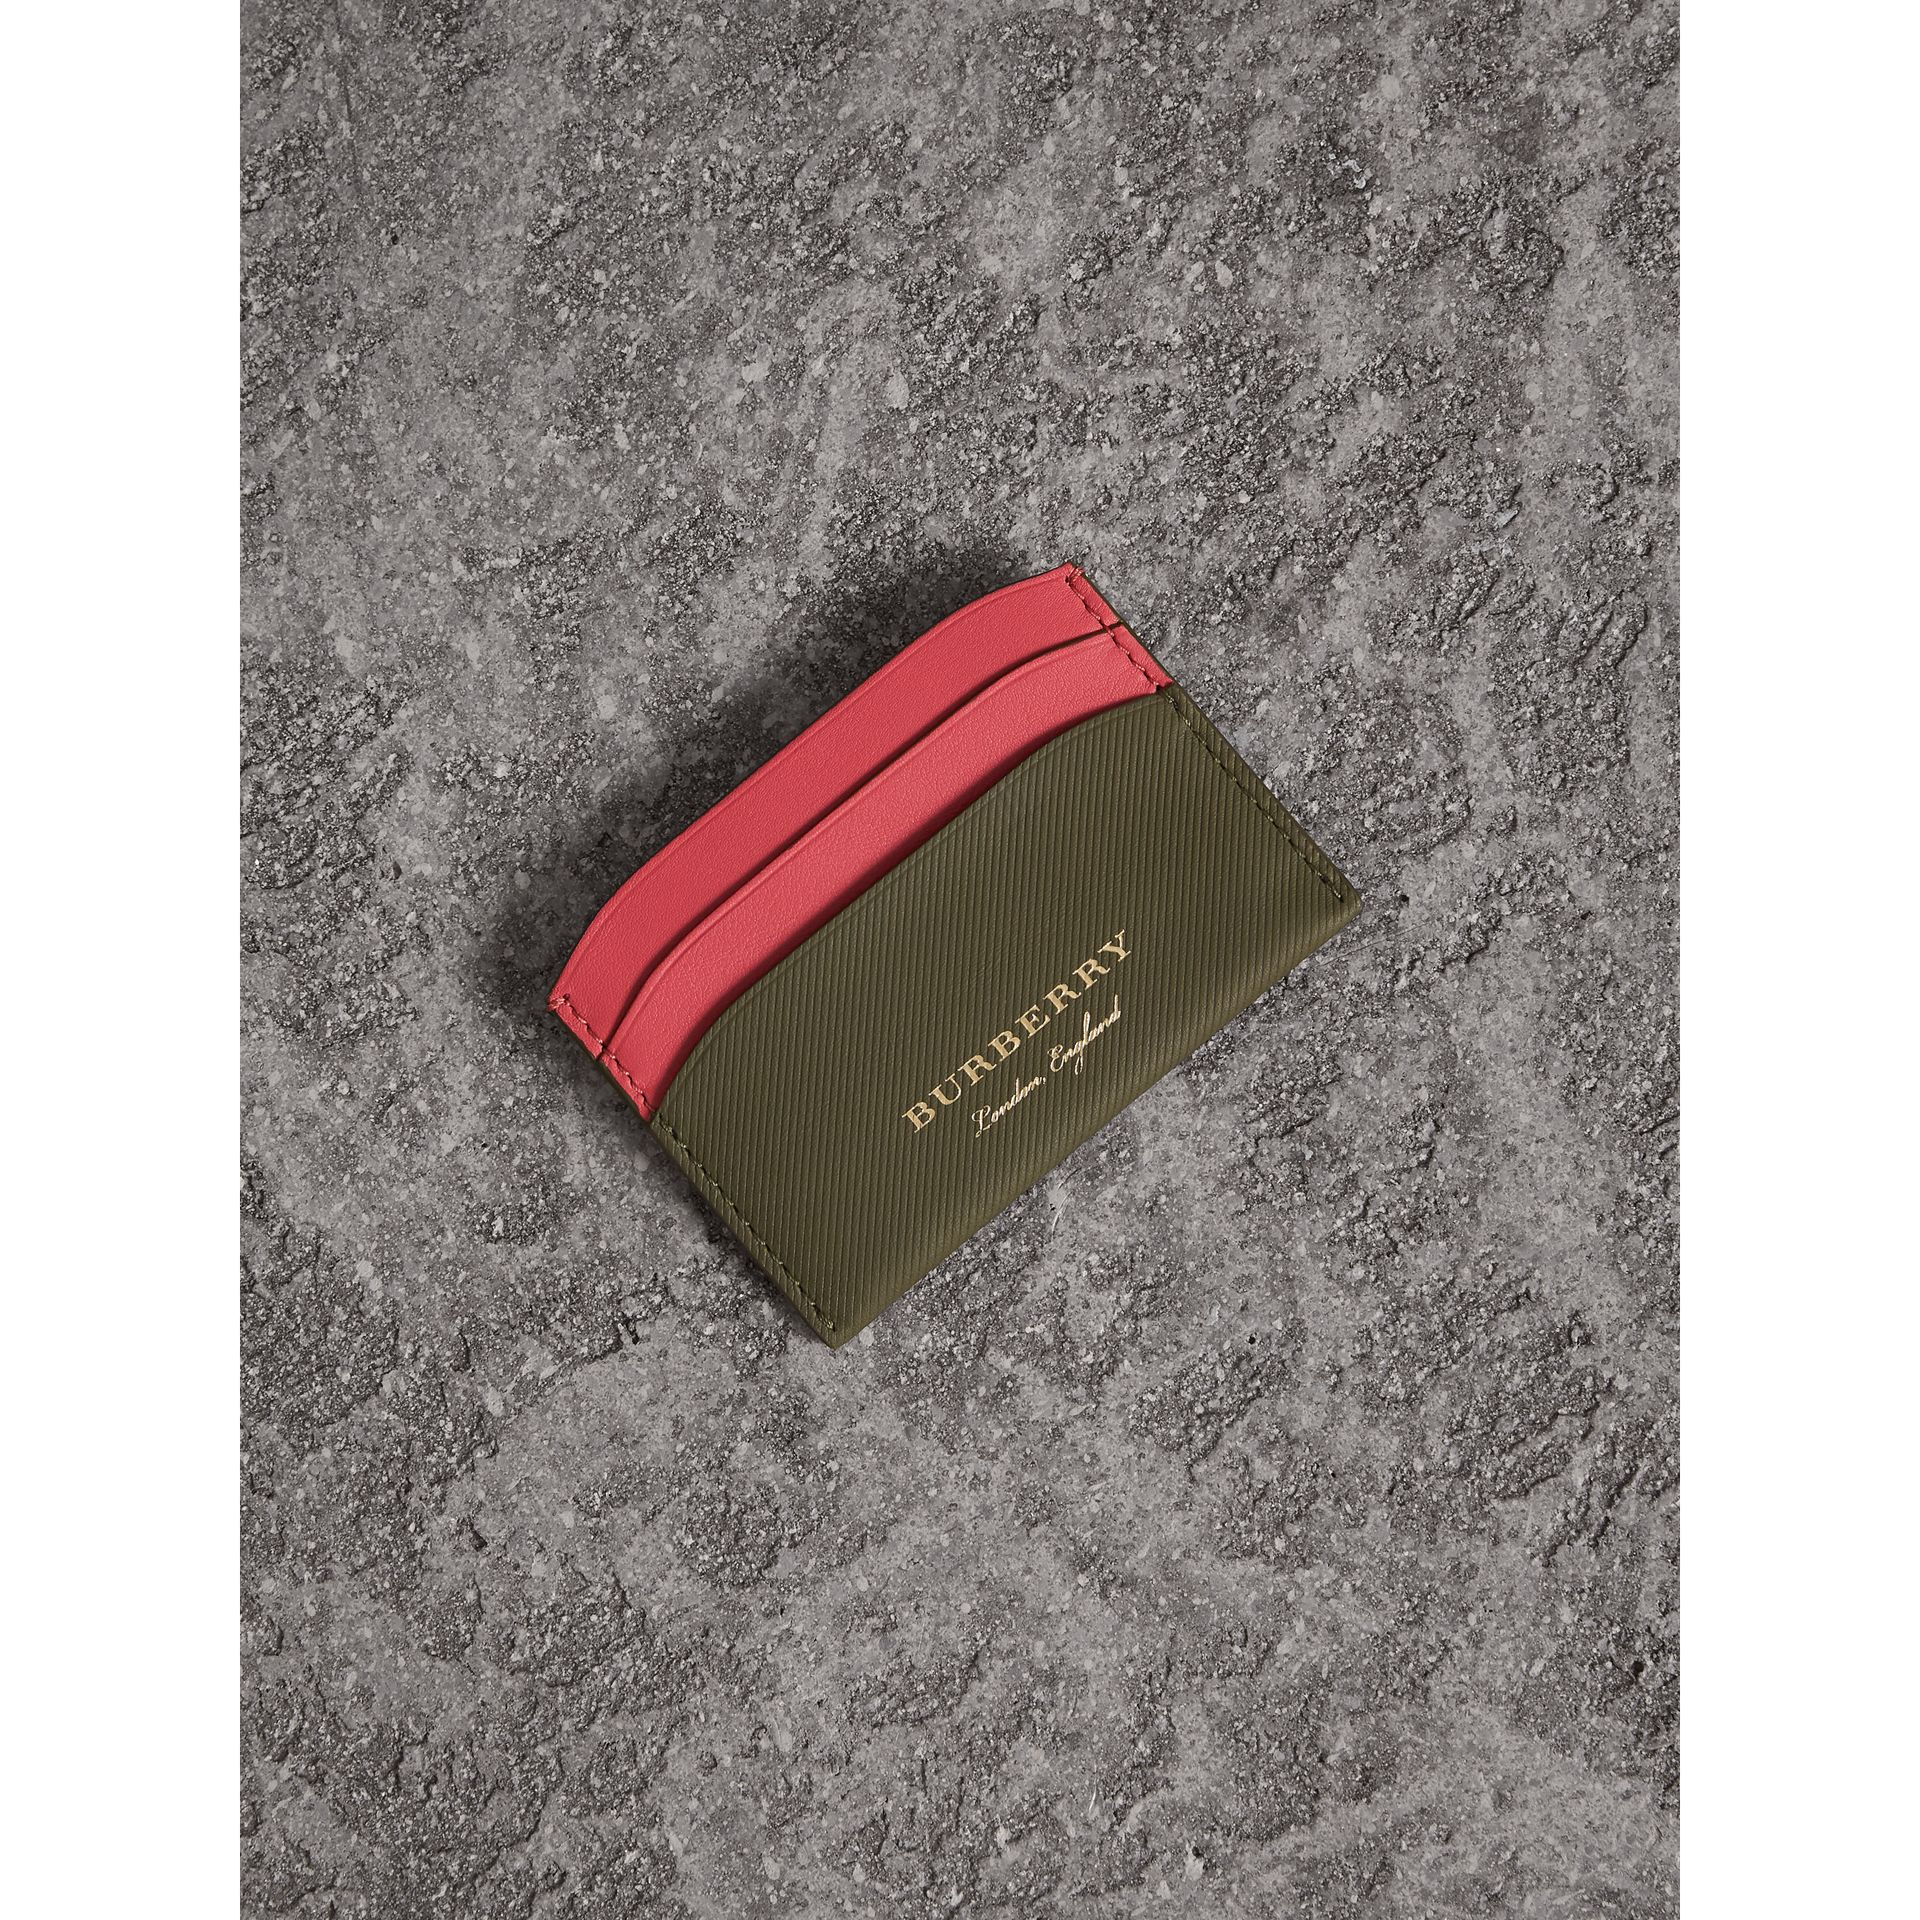 Two-tone Trench Leather Card Case in Mss Green/ Blsm Pink - Women | Burberry United States - gallery image 0